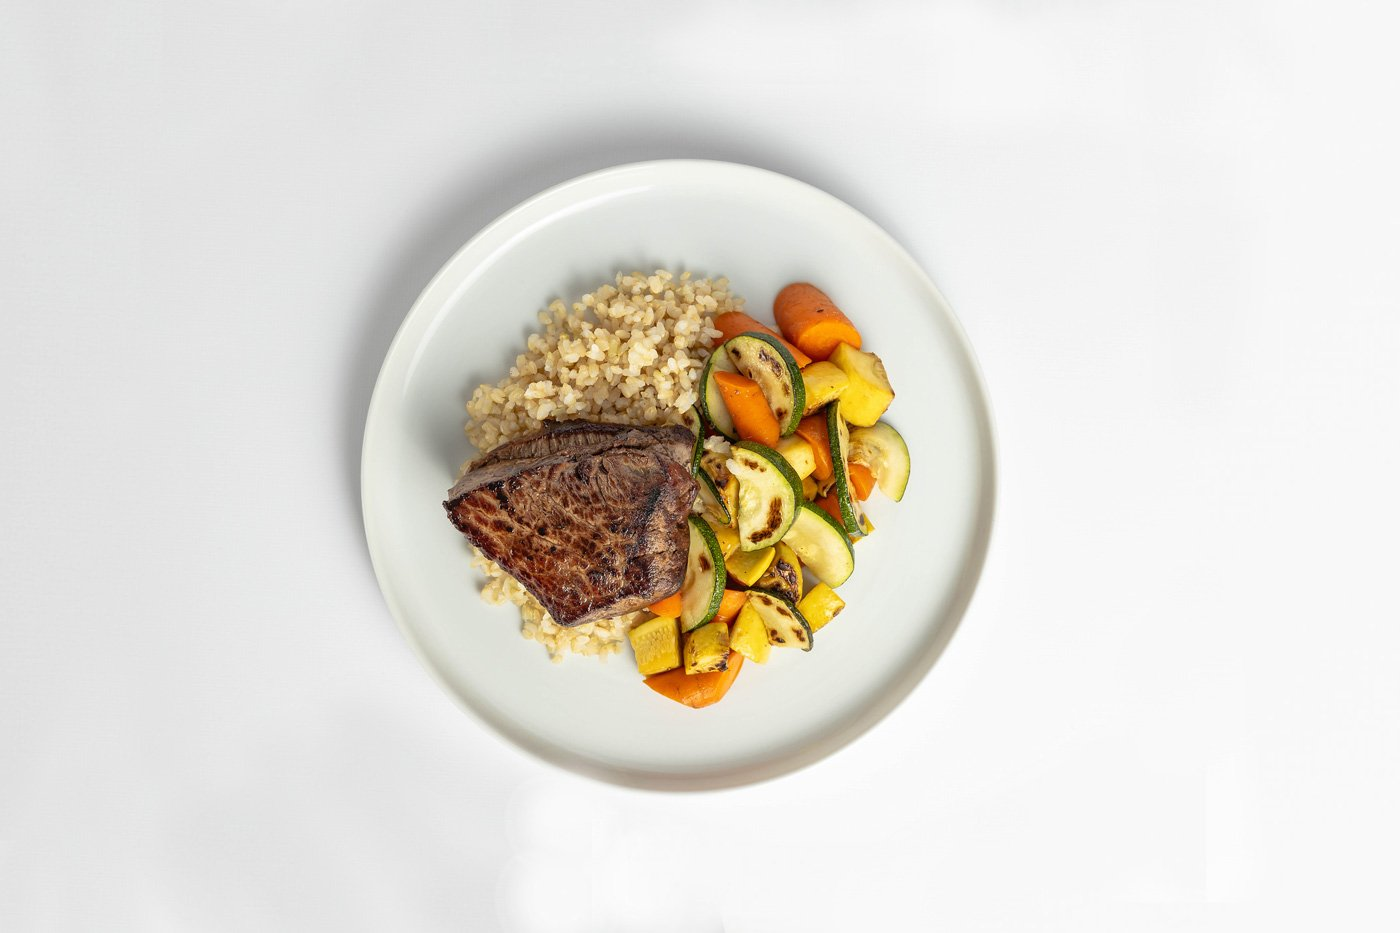 Flat Iron Steak, Brown Rice, Mixed Vegetables Meal Product Image